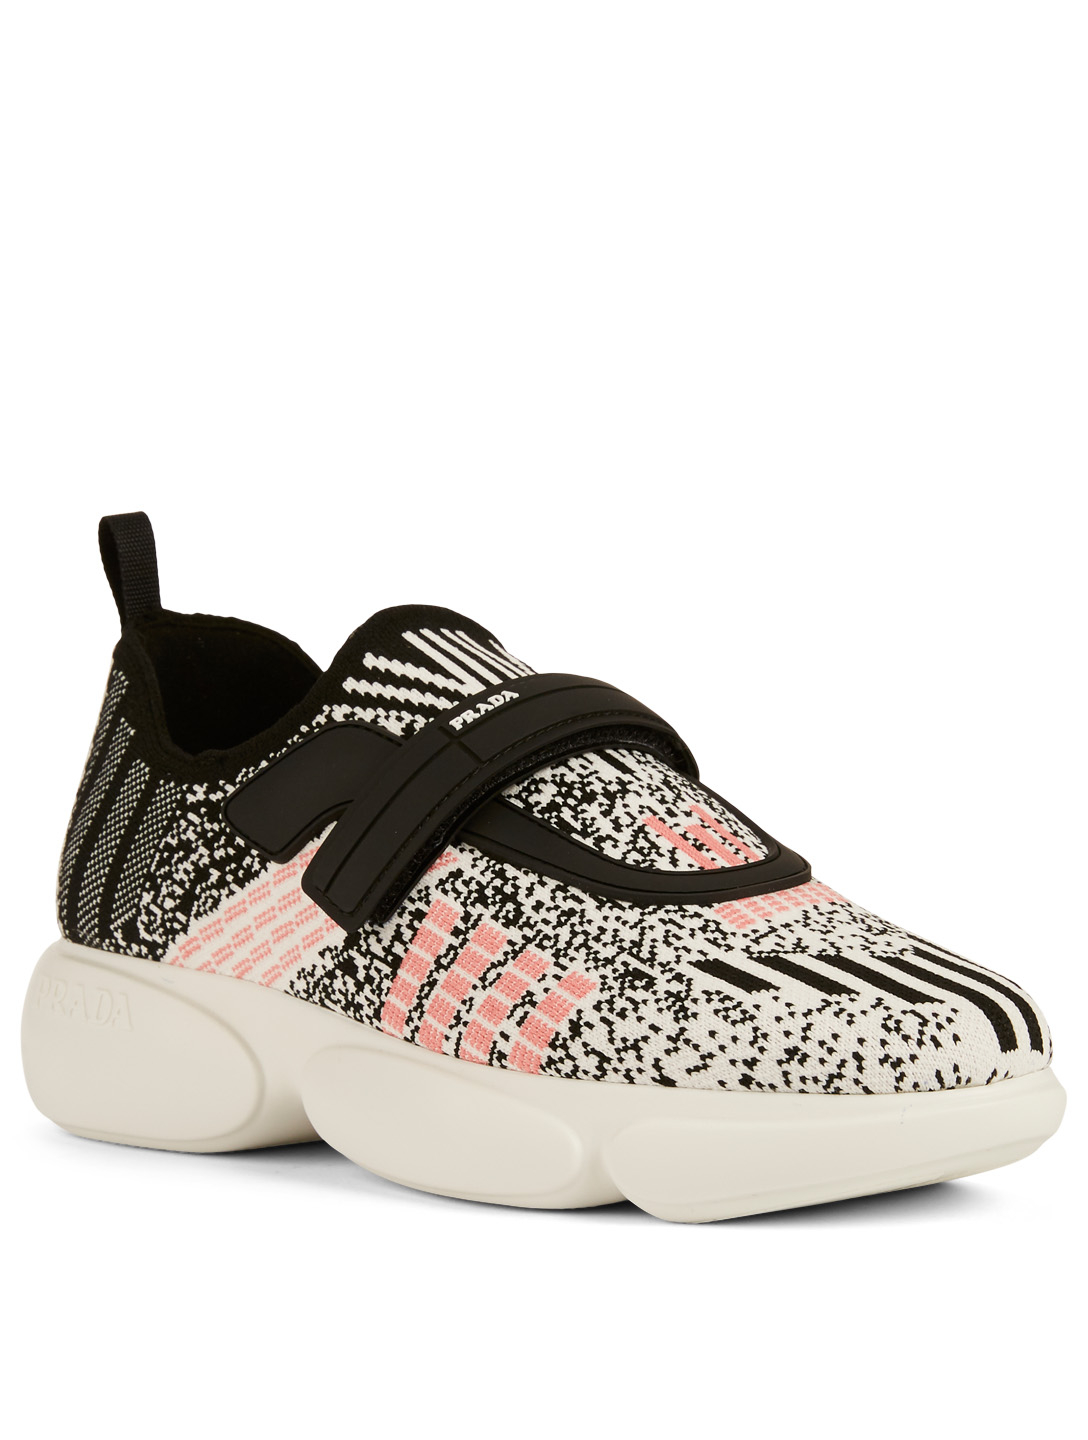 PRADA Cloudbust Geometric Knit Sneakers Designers White